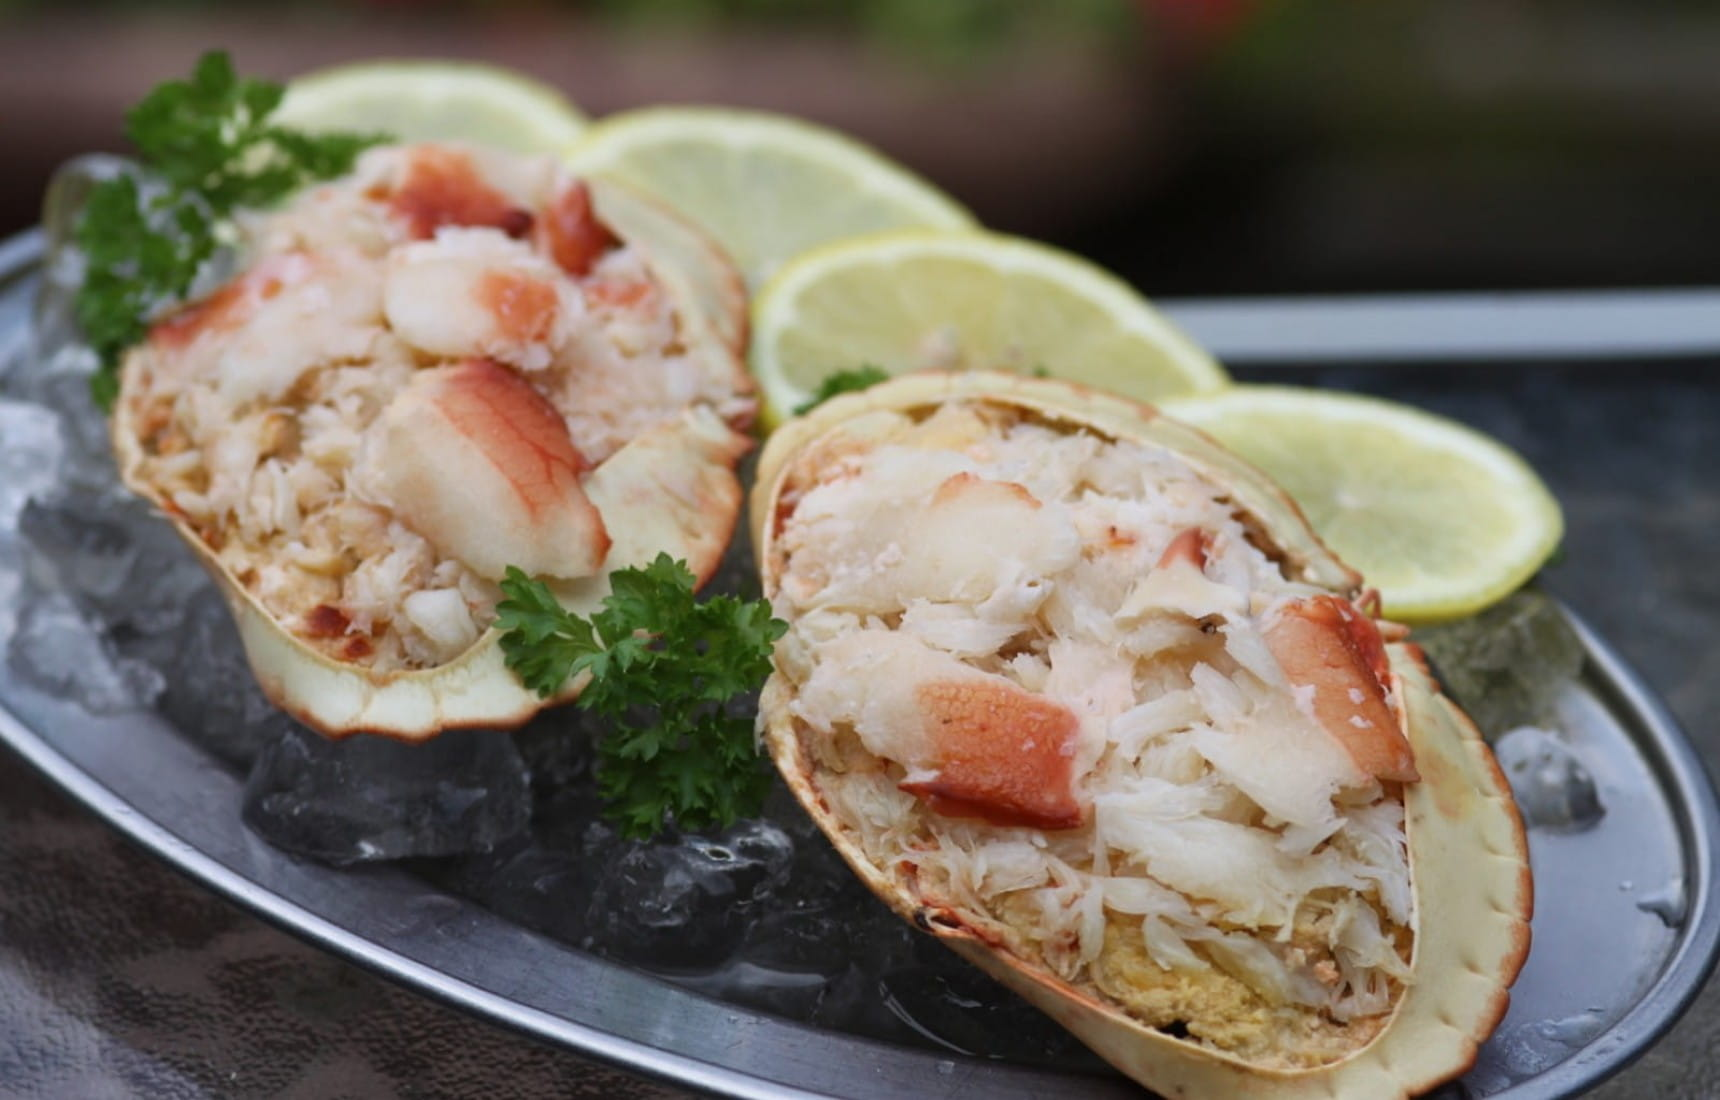 The best wines to pair with crab | Matching Food & Wine